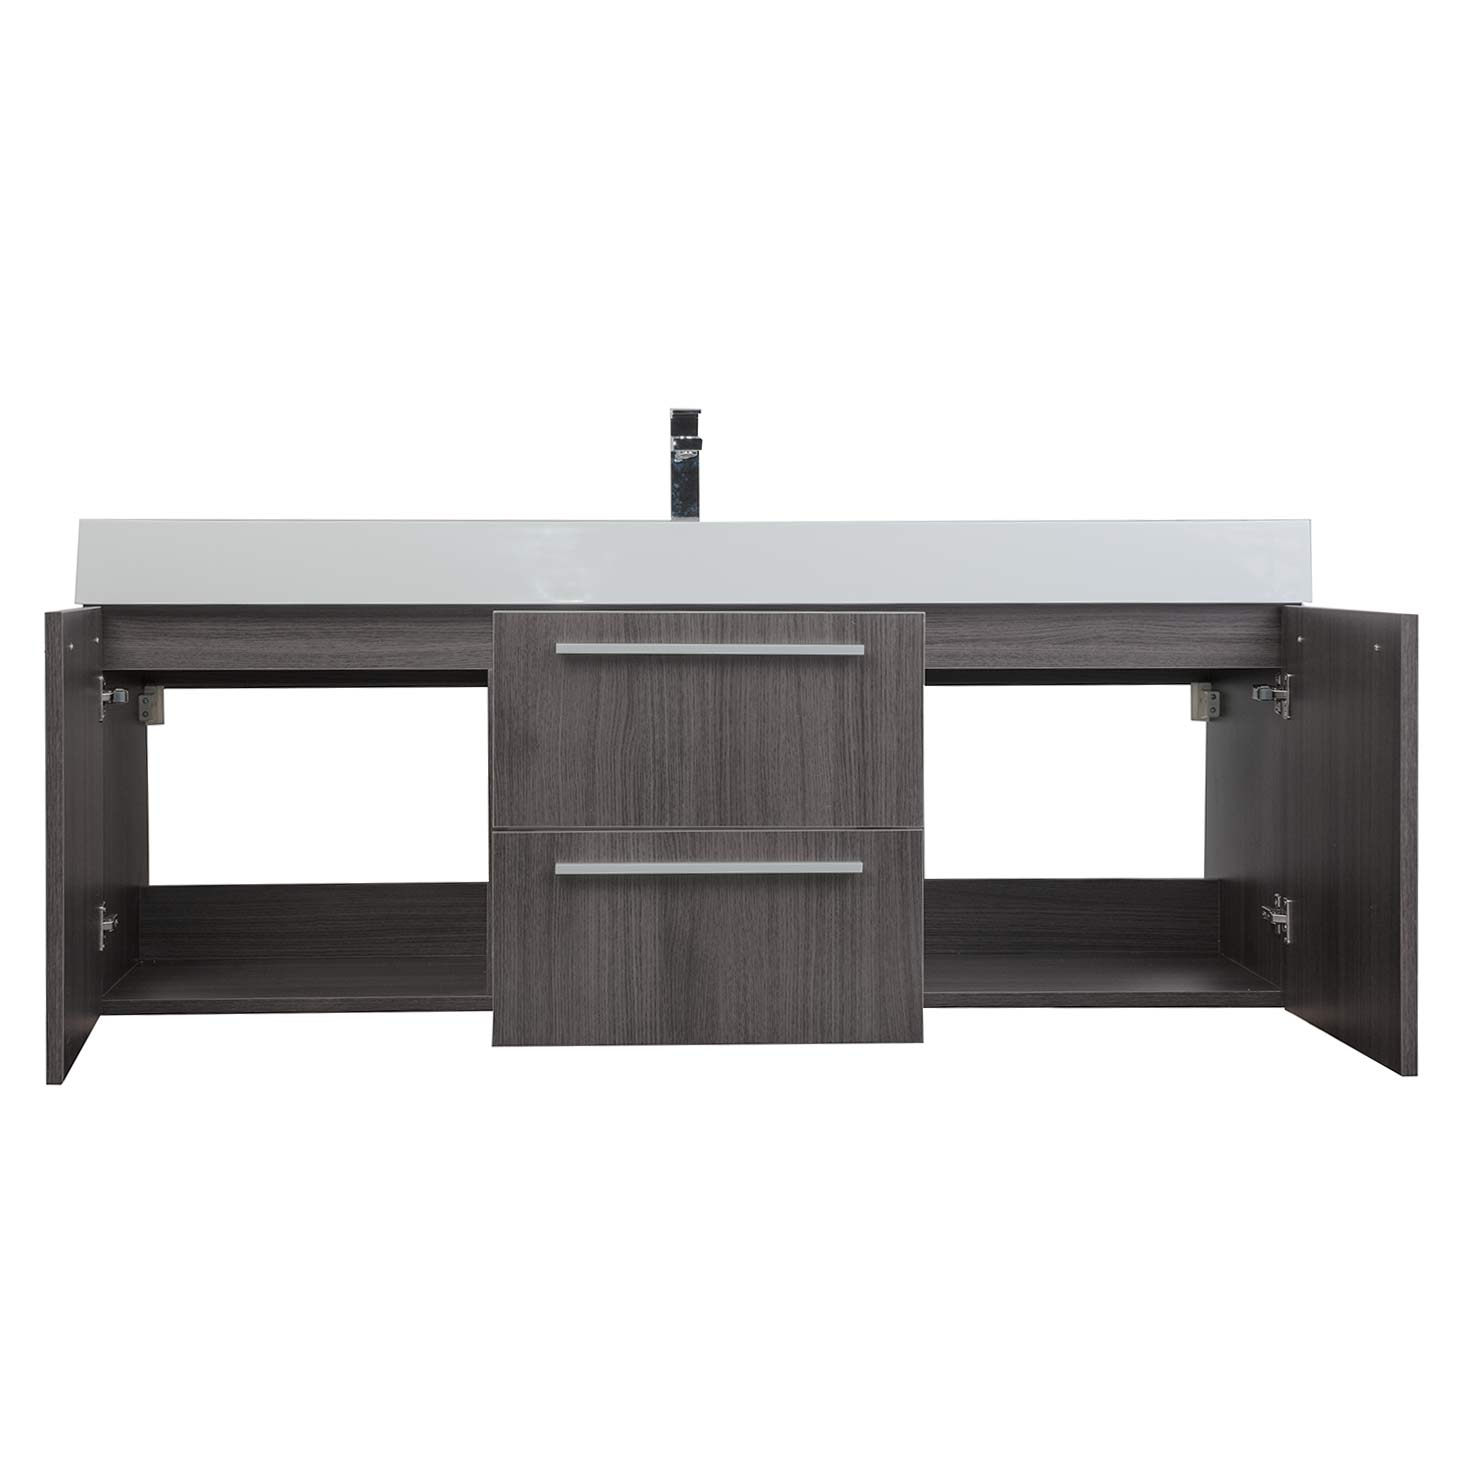 Bathroom Single Vanity Buy 59 Inch Wall Mount Contemporary Bathroom Vanity In Grey Oak Tn